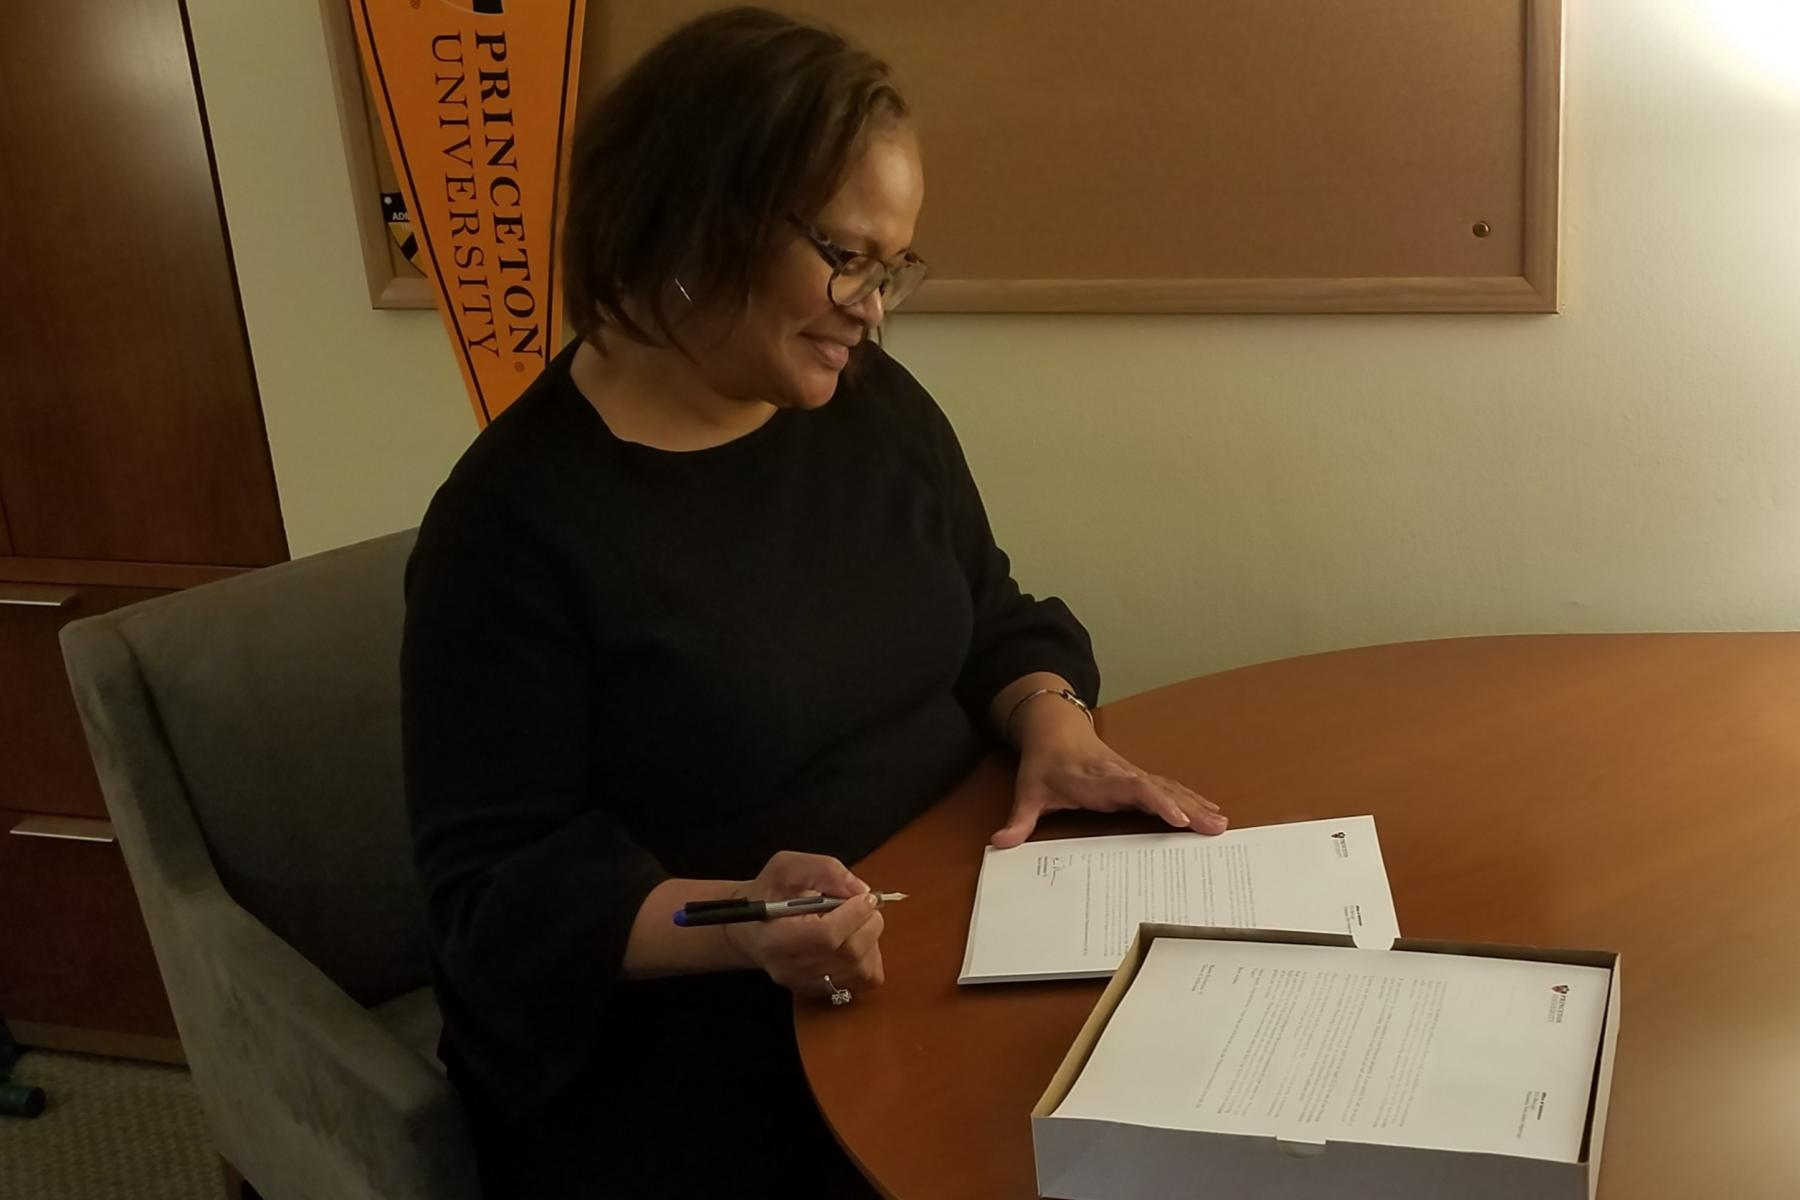 La Decana Richardson firmando las cartas de decisión